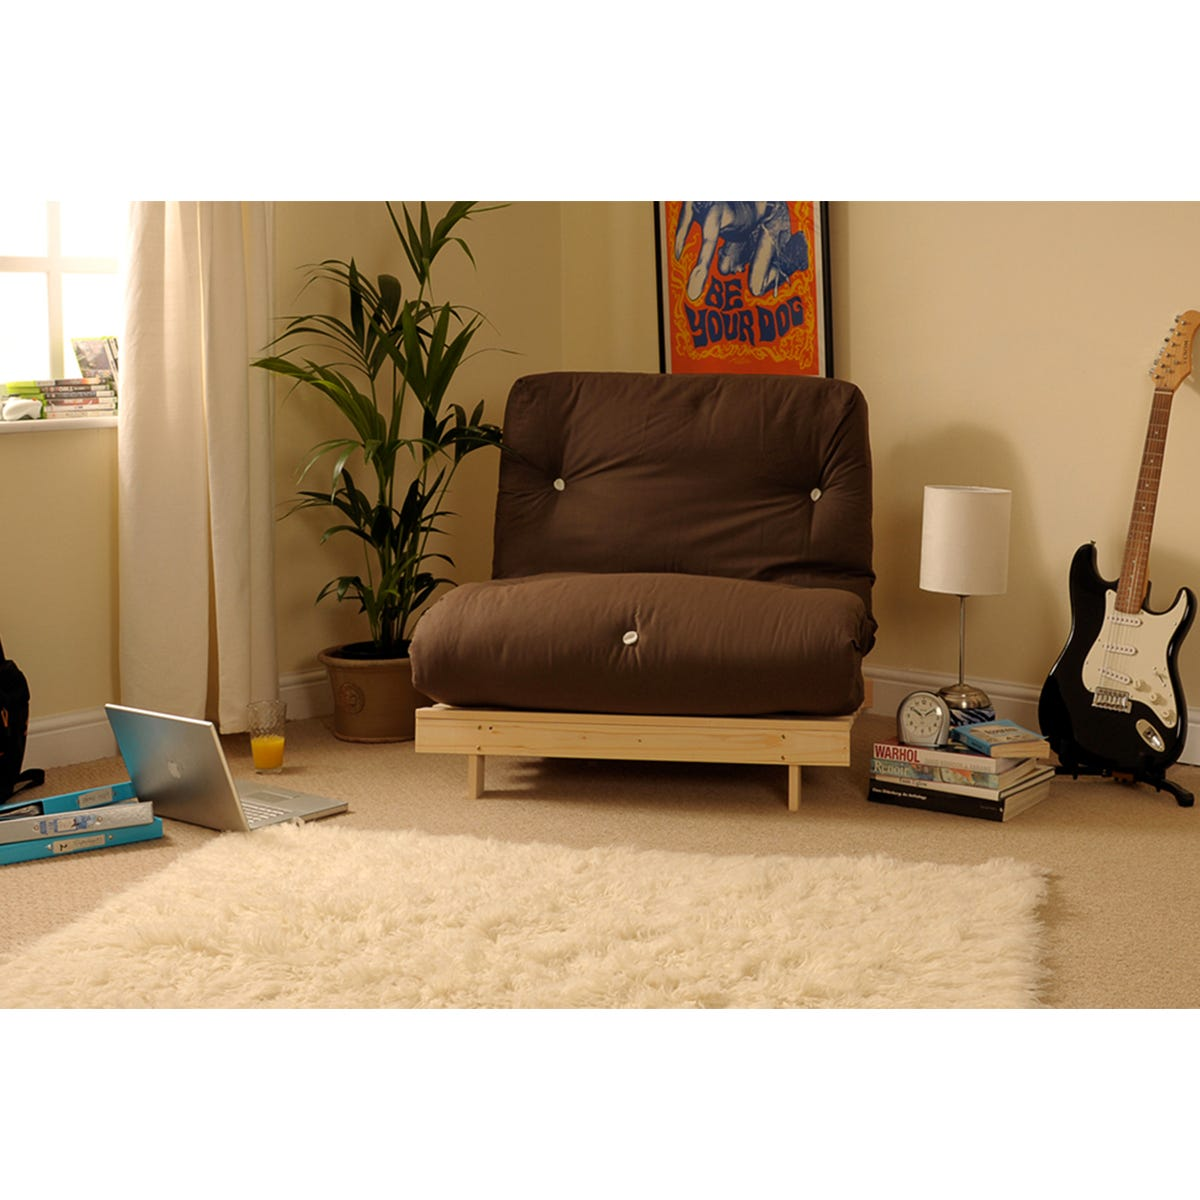 Albury Chocolate Sofa Bed Set With Tufted Mattress - Small Single